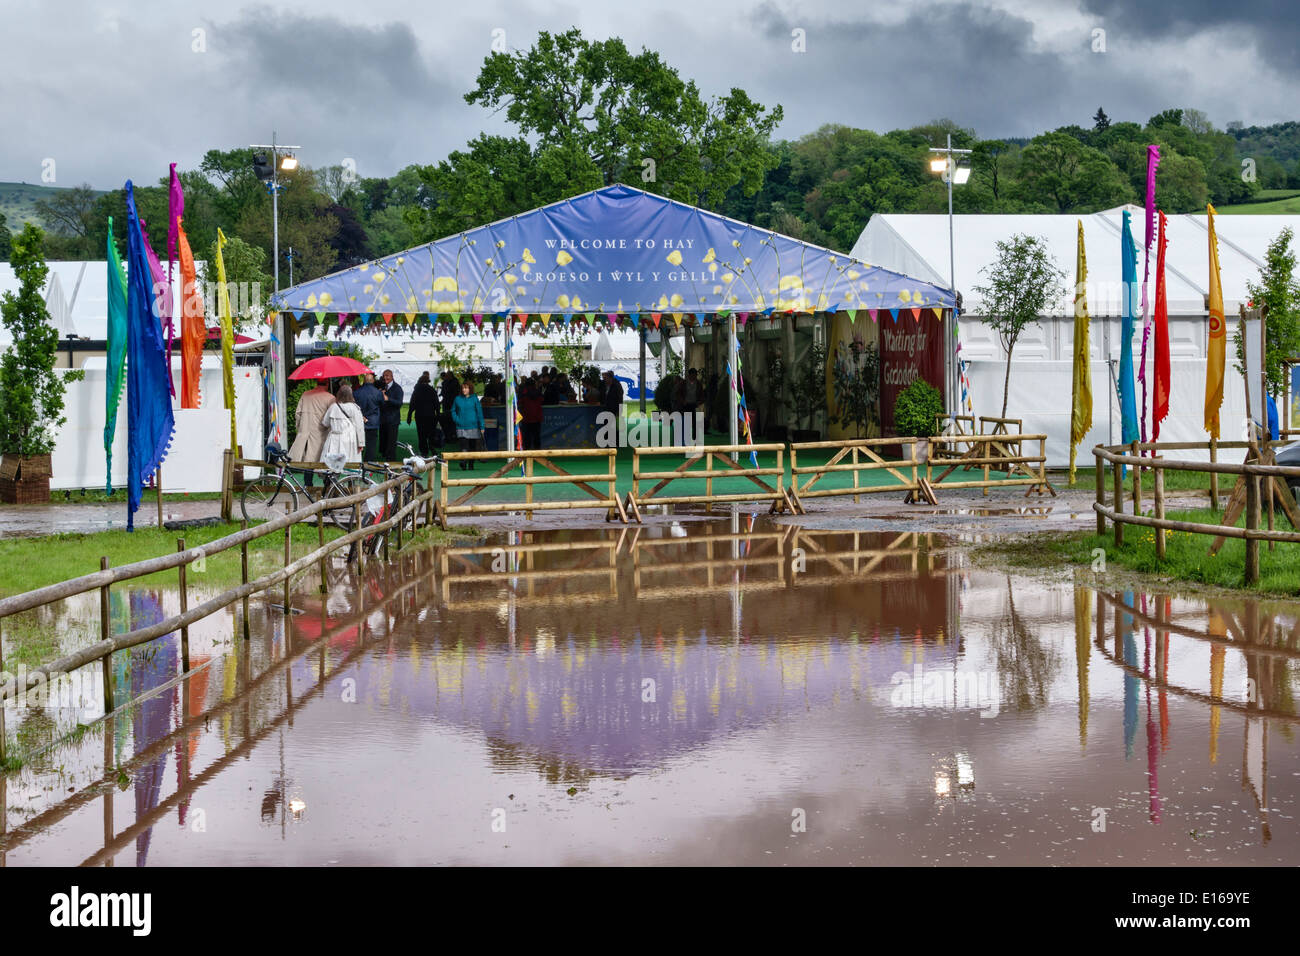 A wet day at the 2014 Hay Festival of Literature - the flooded entrance to the site - Stock Image